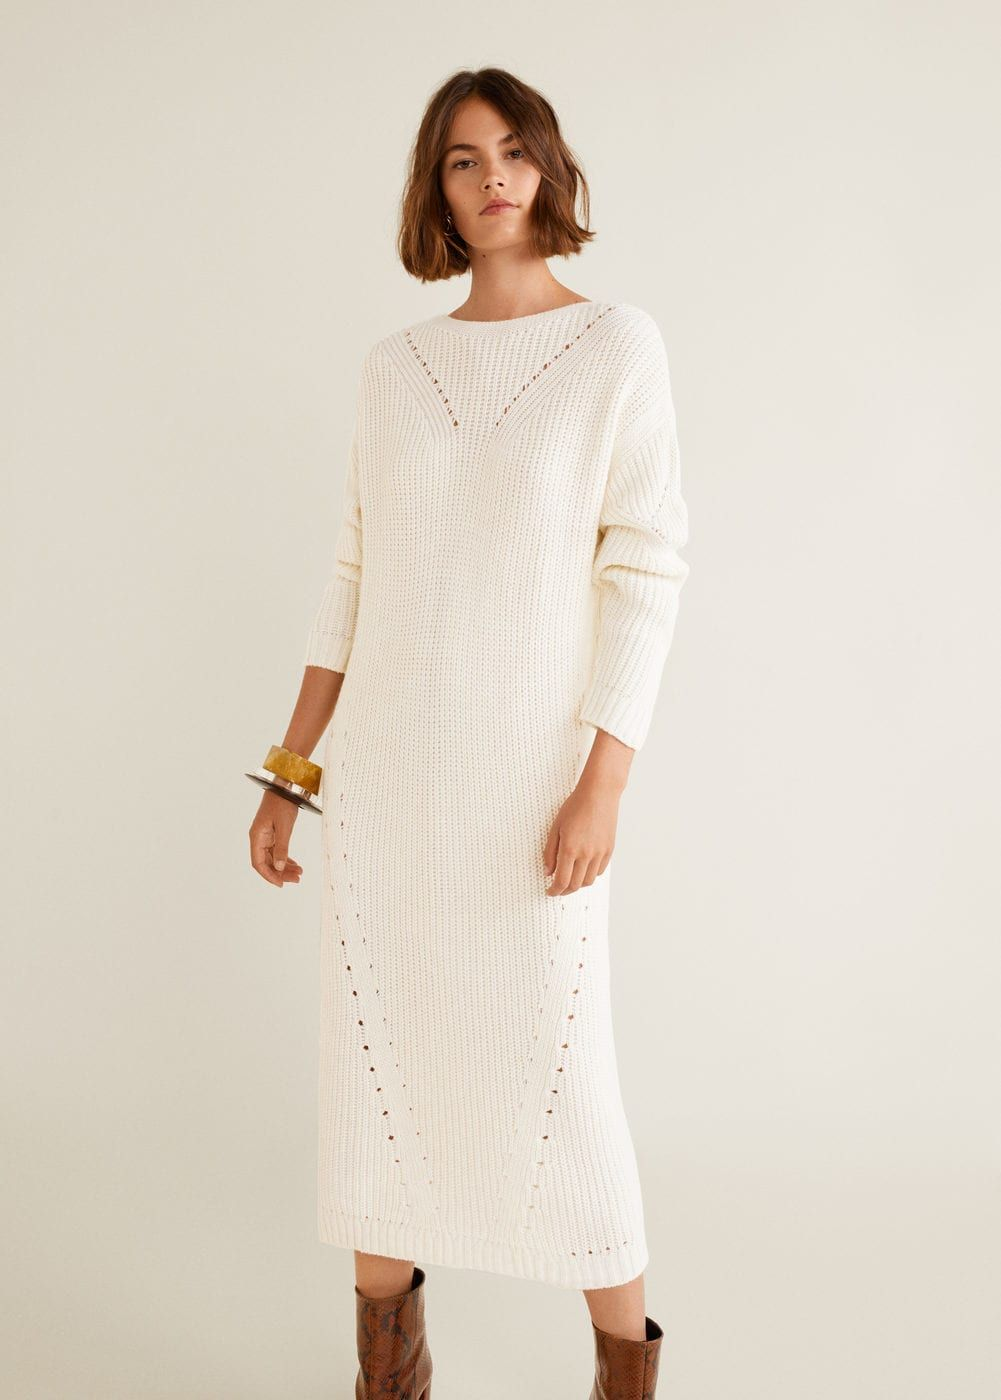 Mango  Long knitted dress, Sweater dress, Women long dresses